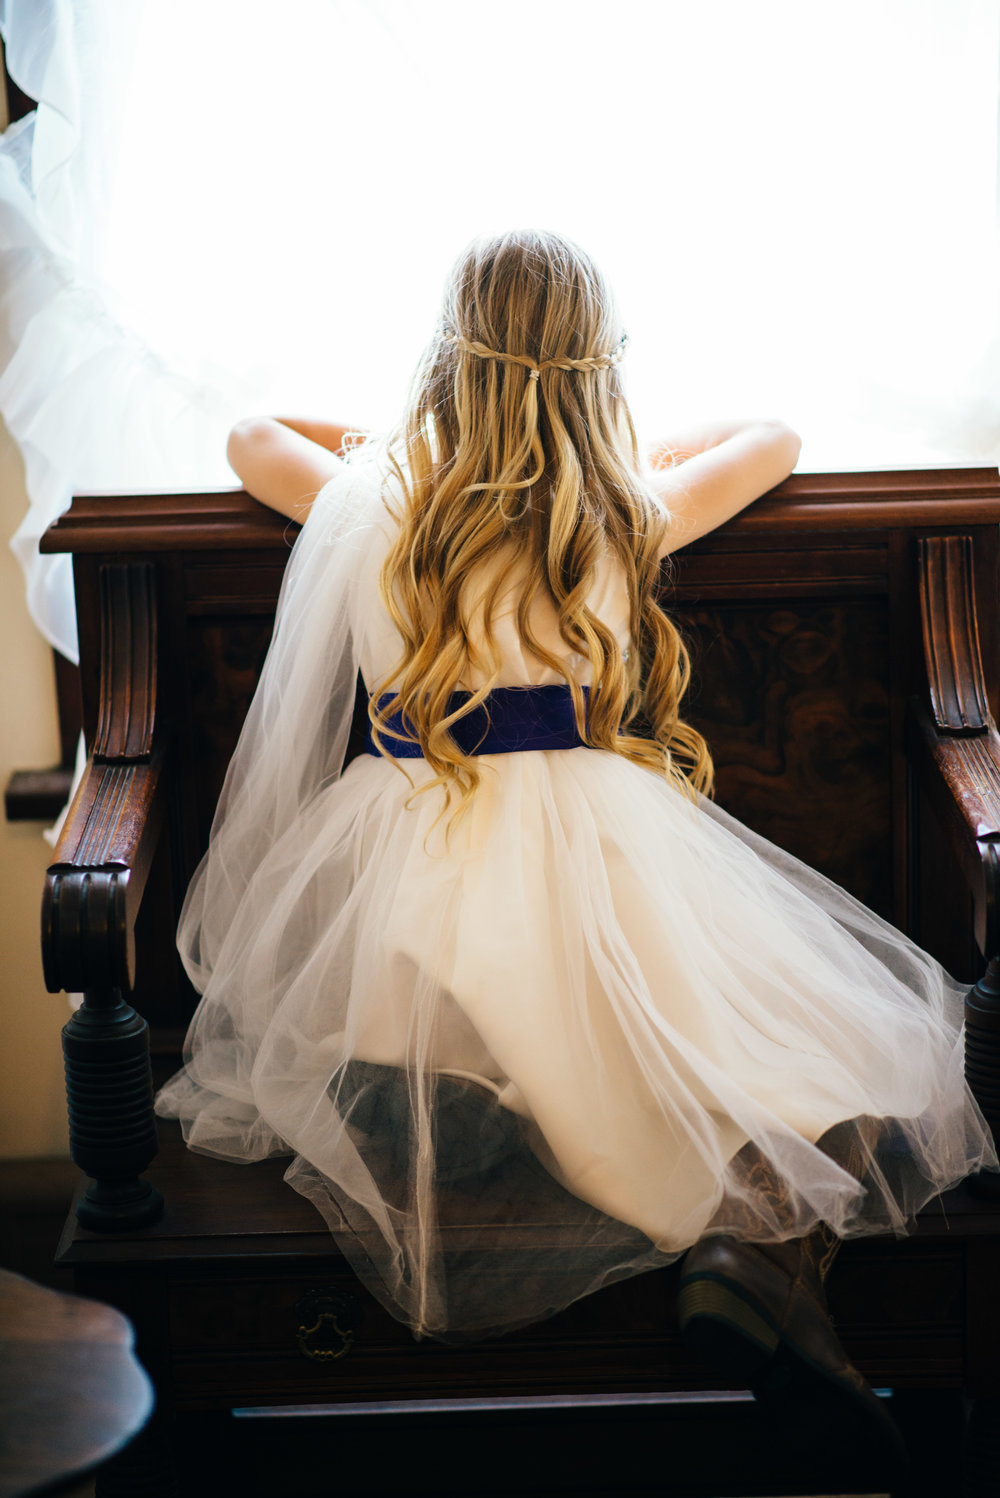 blonde flower girl wearing white dress and cowboy boots looking out of window